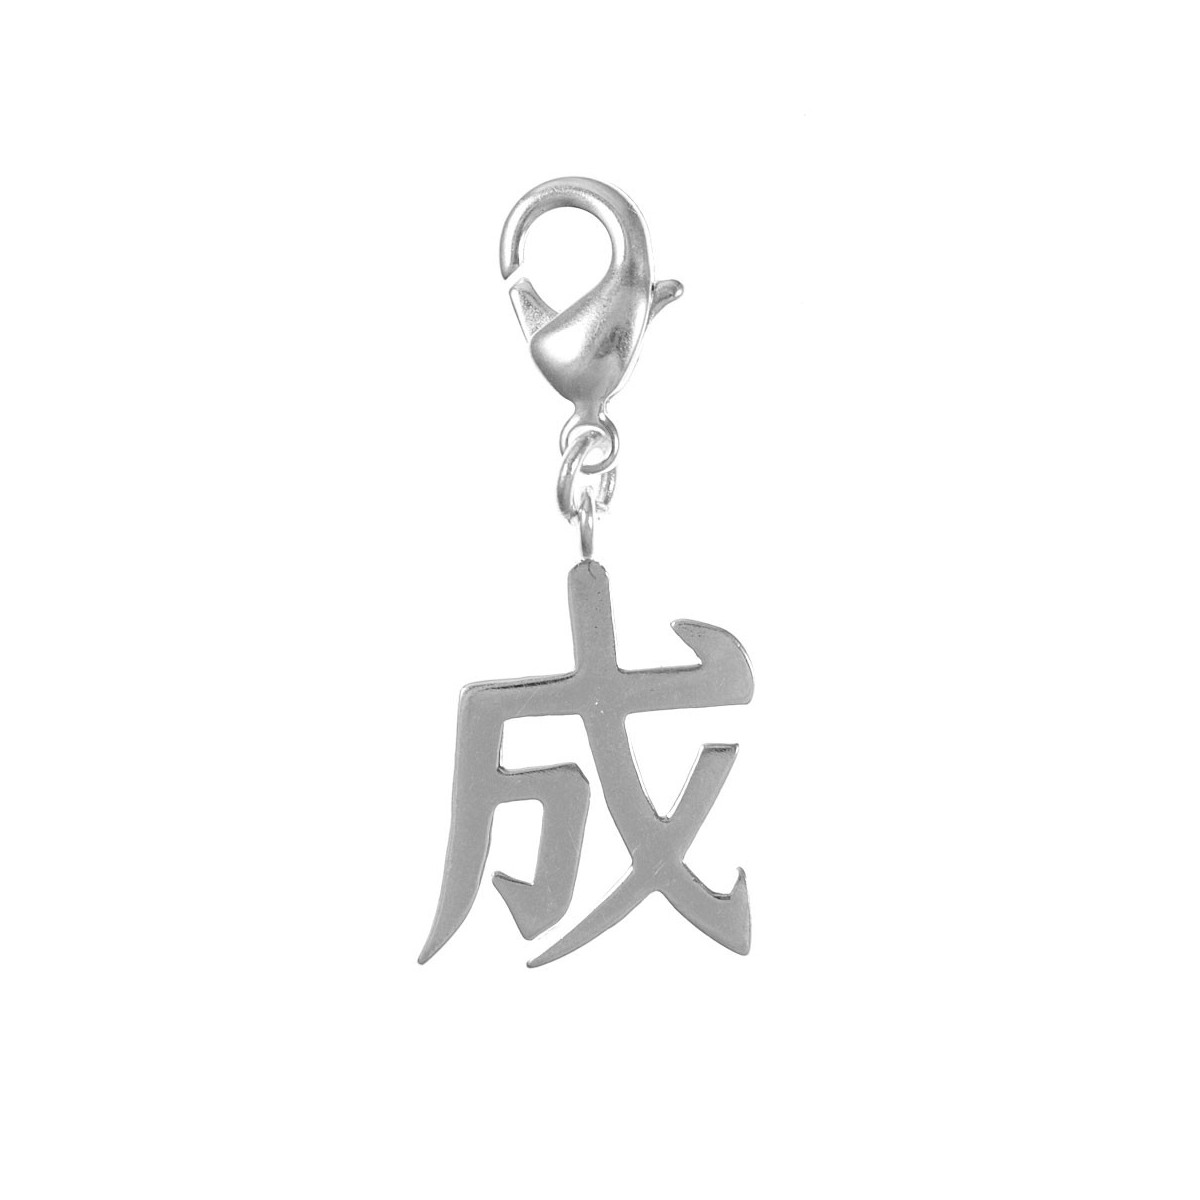 Charm signe chinois So Charm plaqué argent 3 microns